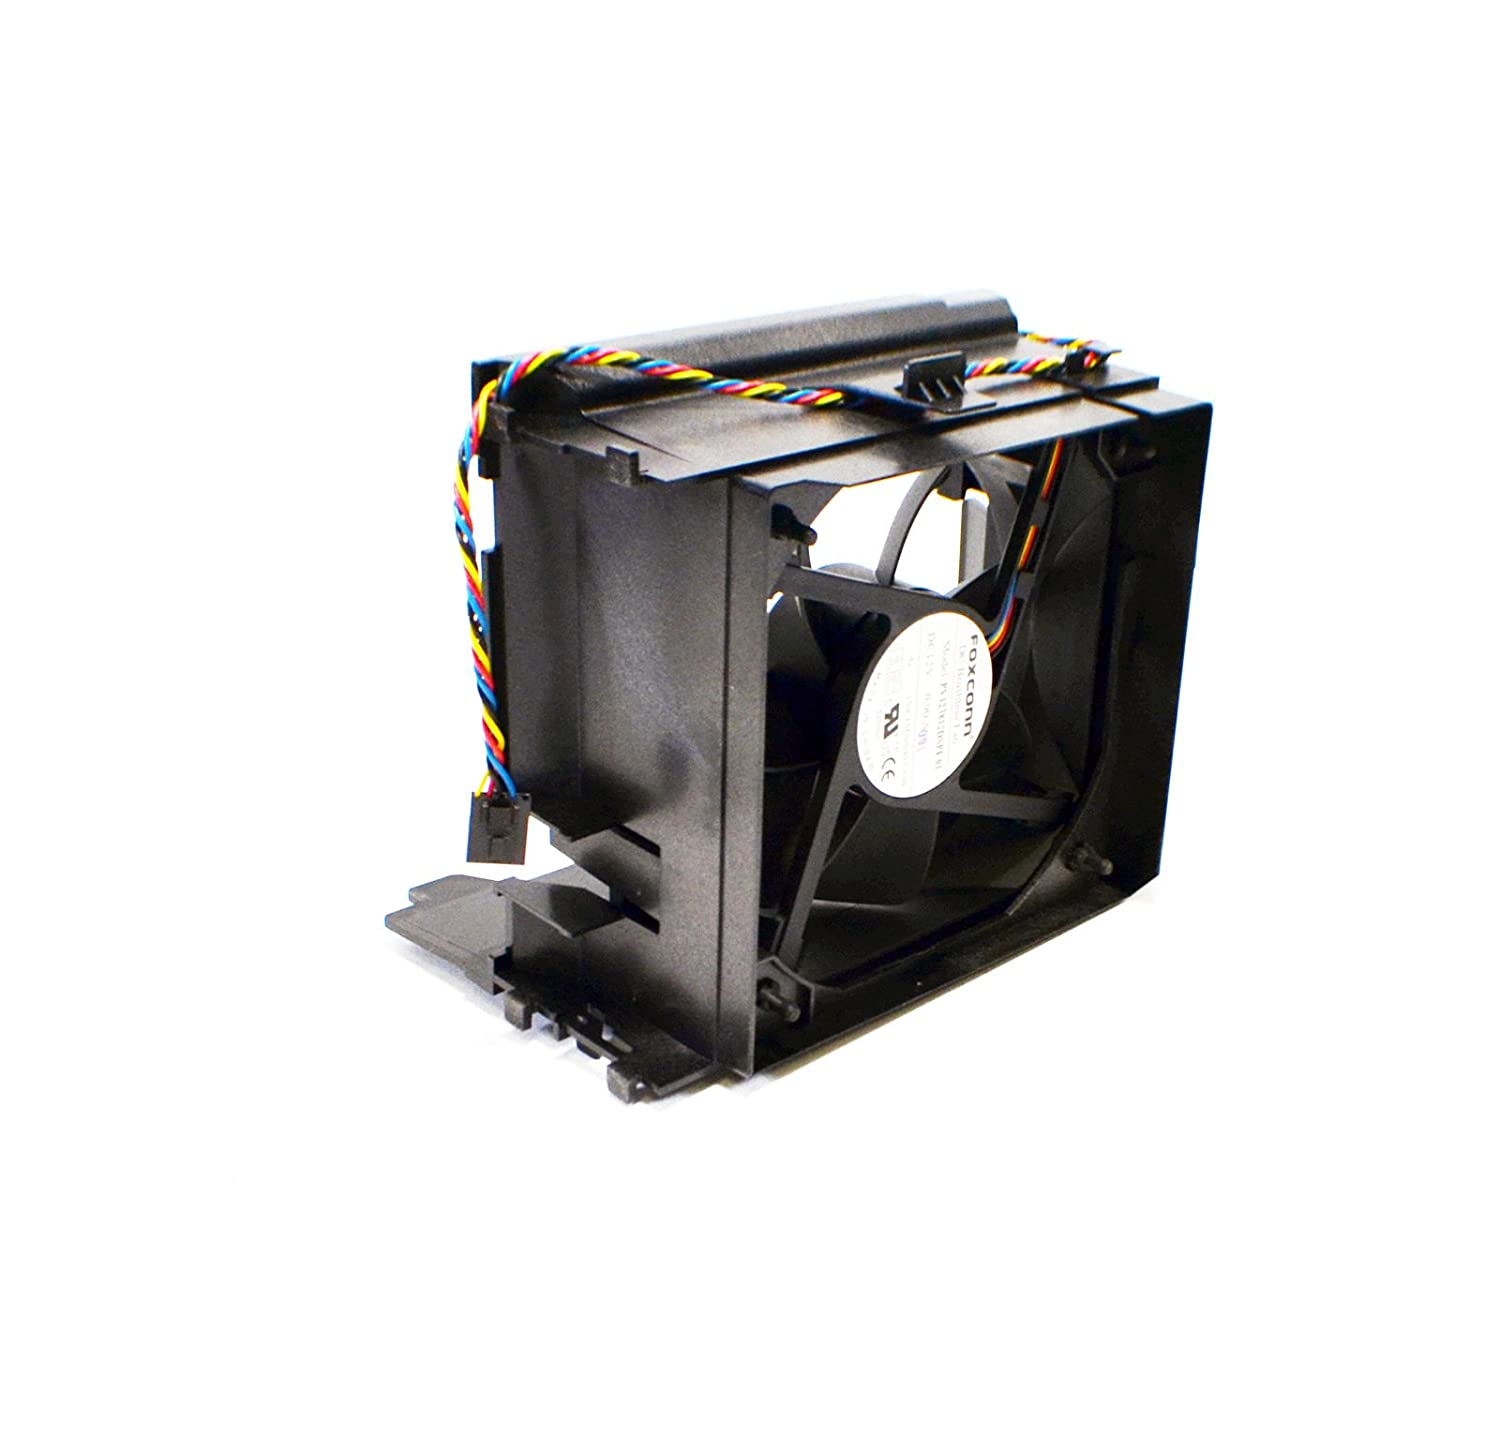 DELL OptiPlex 745 740 755 SMT small mini tower computer case chassis front cover